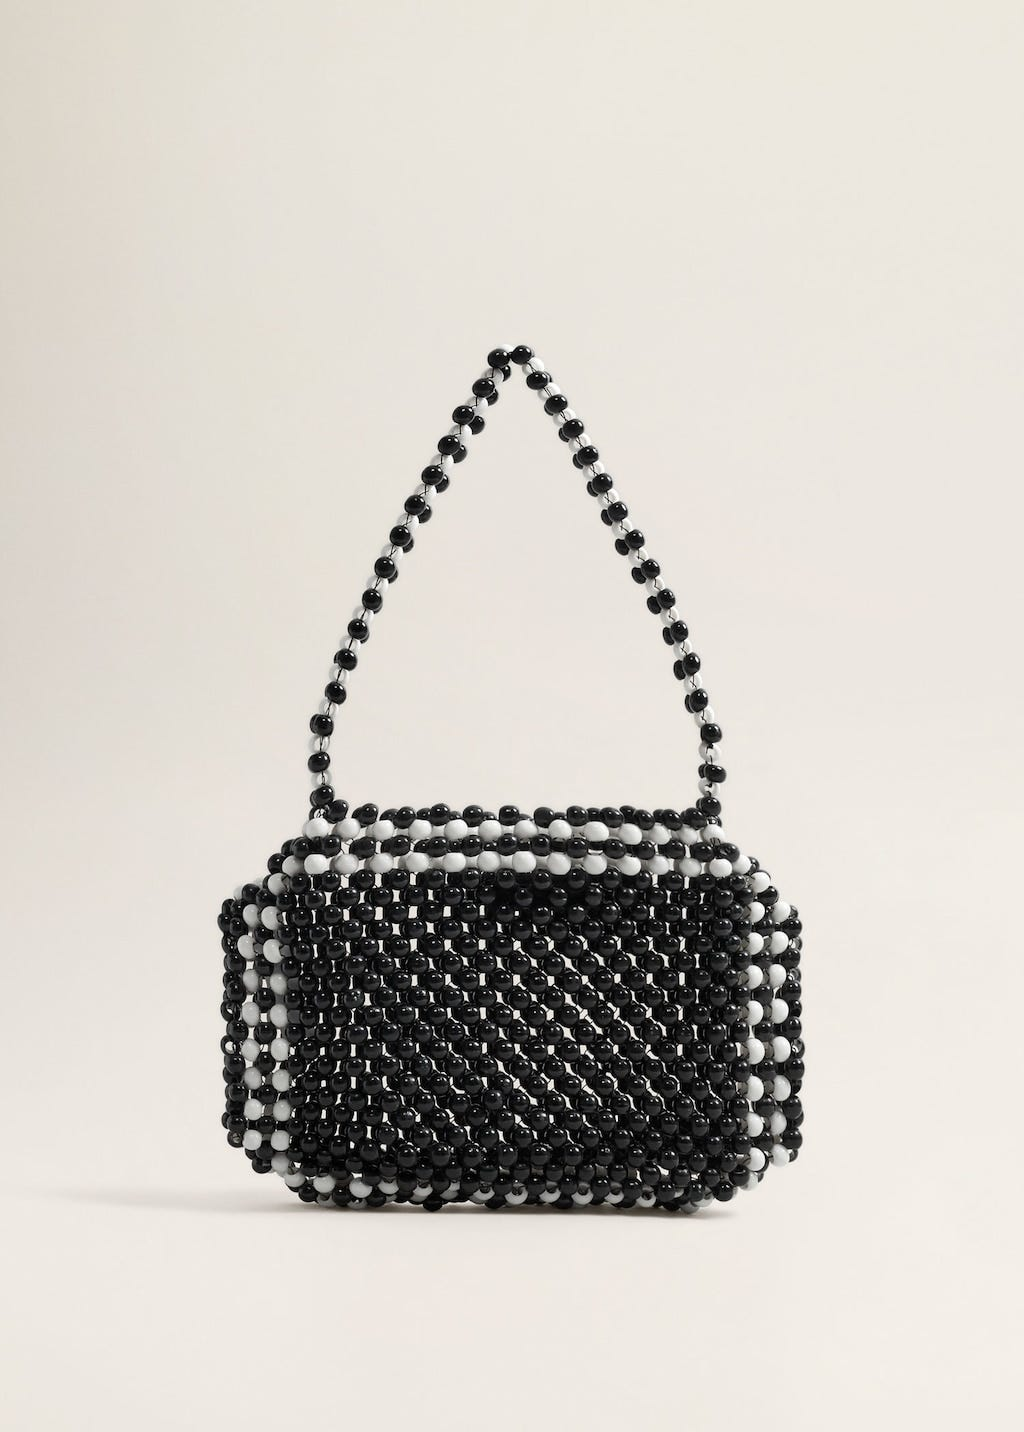 Beaded And Pearl Embellished Handbag Trend For 2018